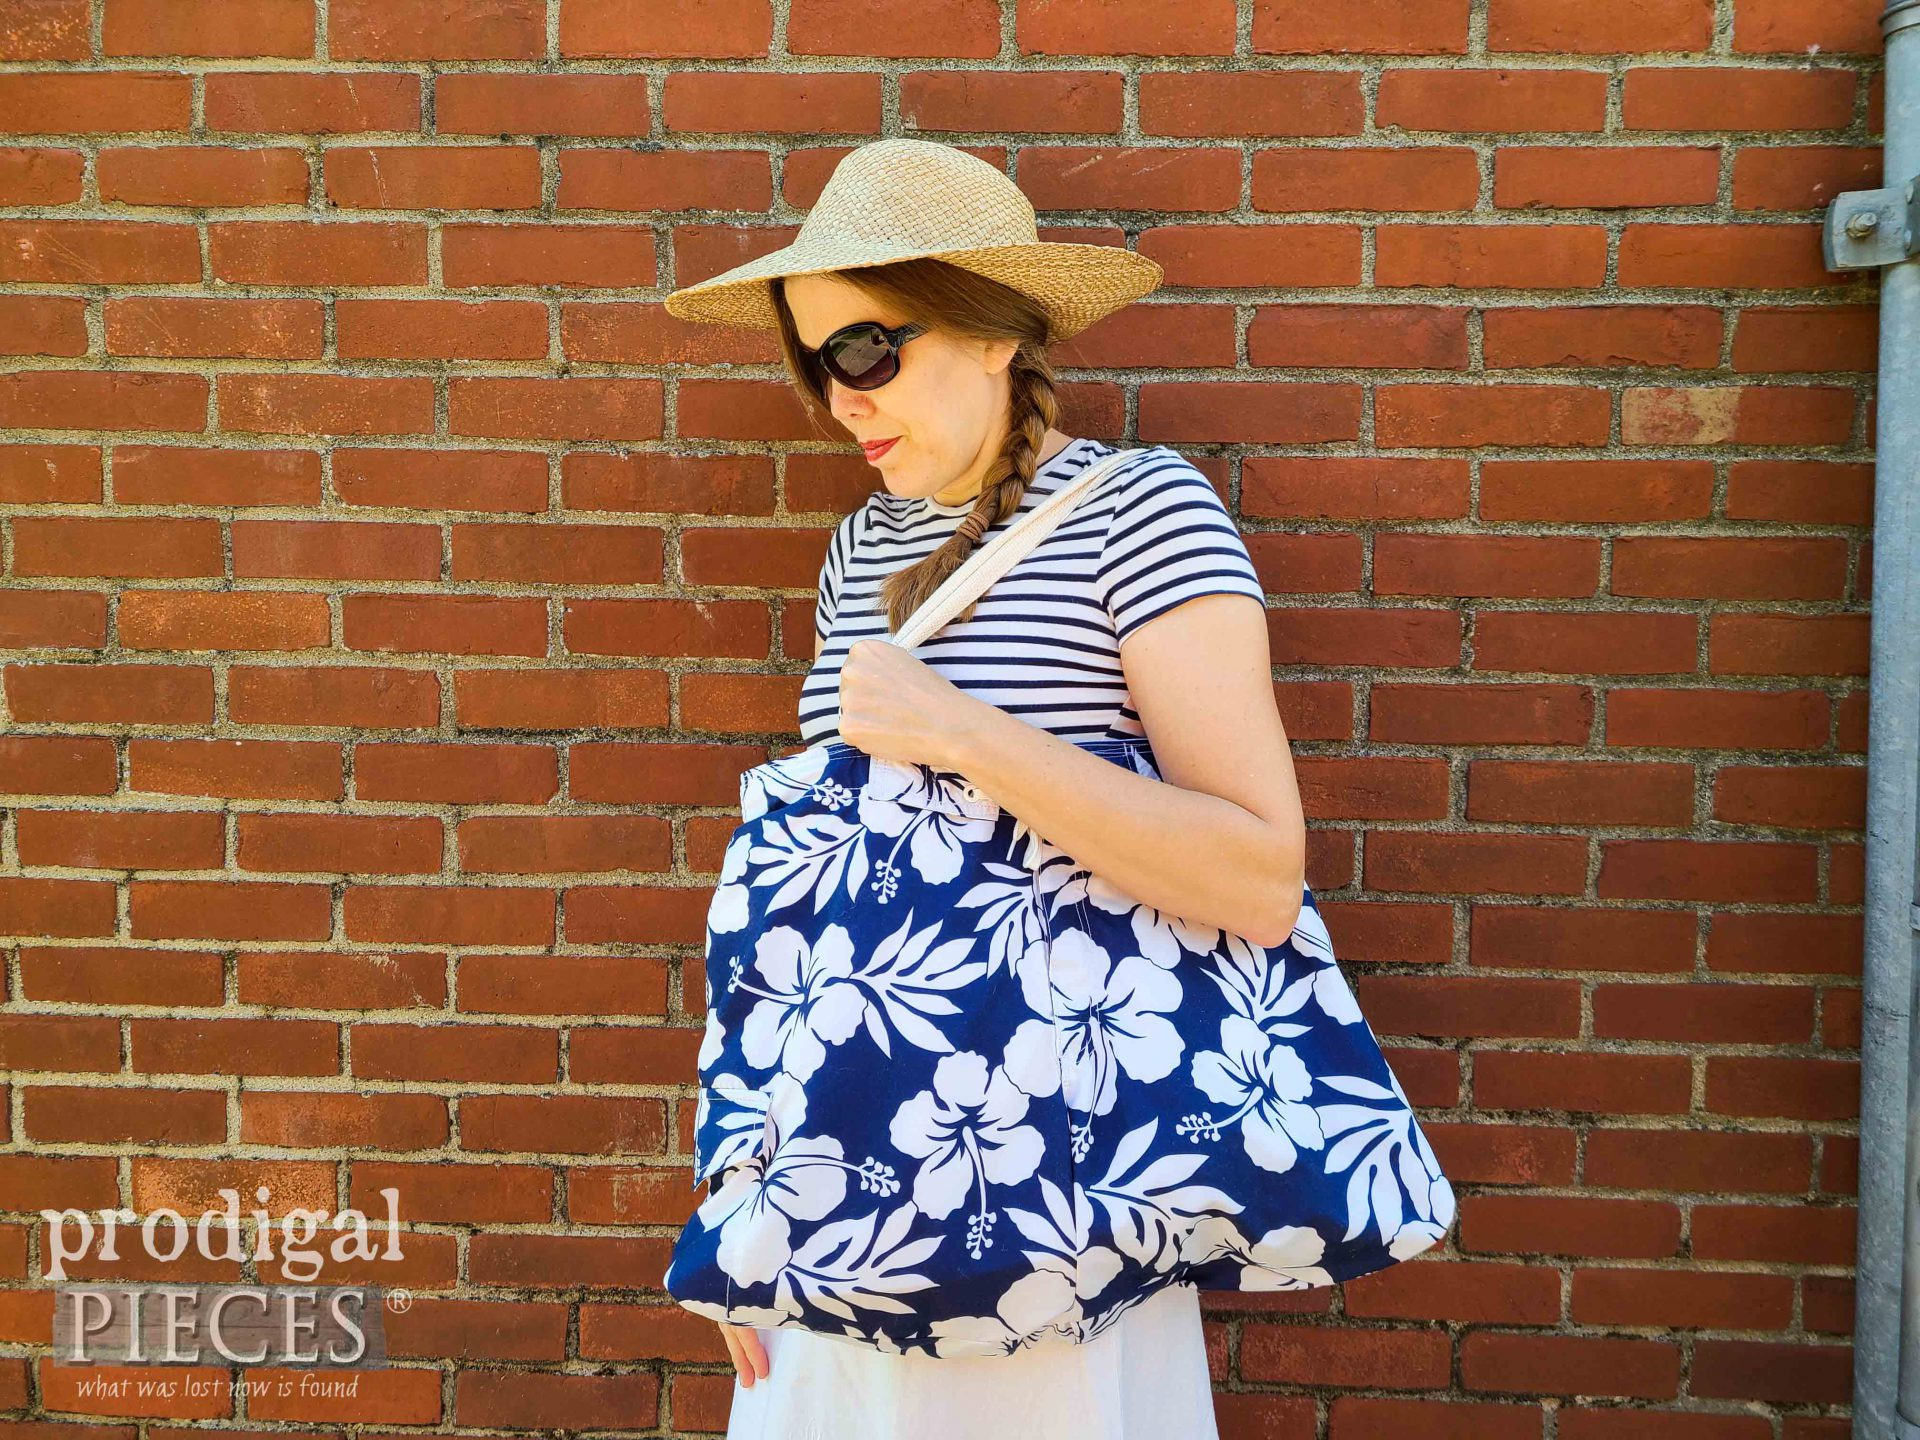 Larissa of Prodigal Pieces with Handmade Upcycled Swimsuit Bag at prodigalpieces.com #prodigalpieces #sewing #summer #handmade #bag #fashion